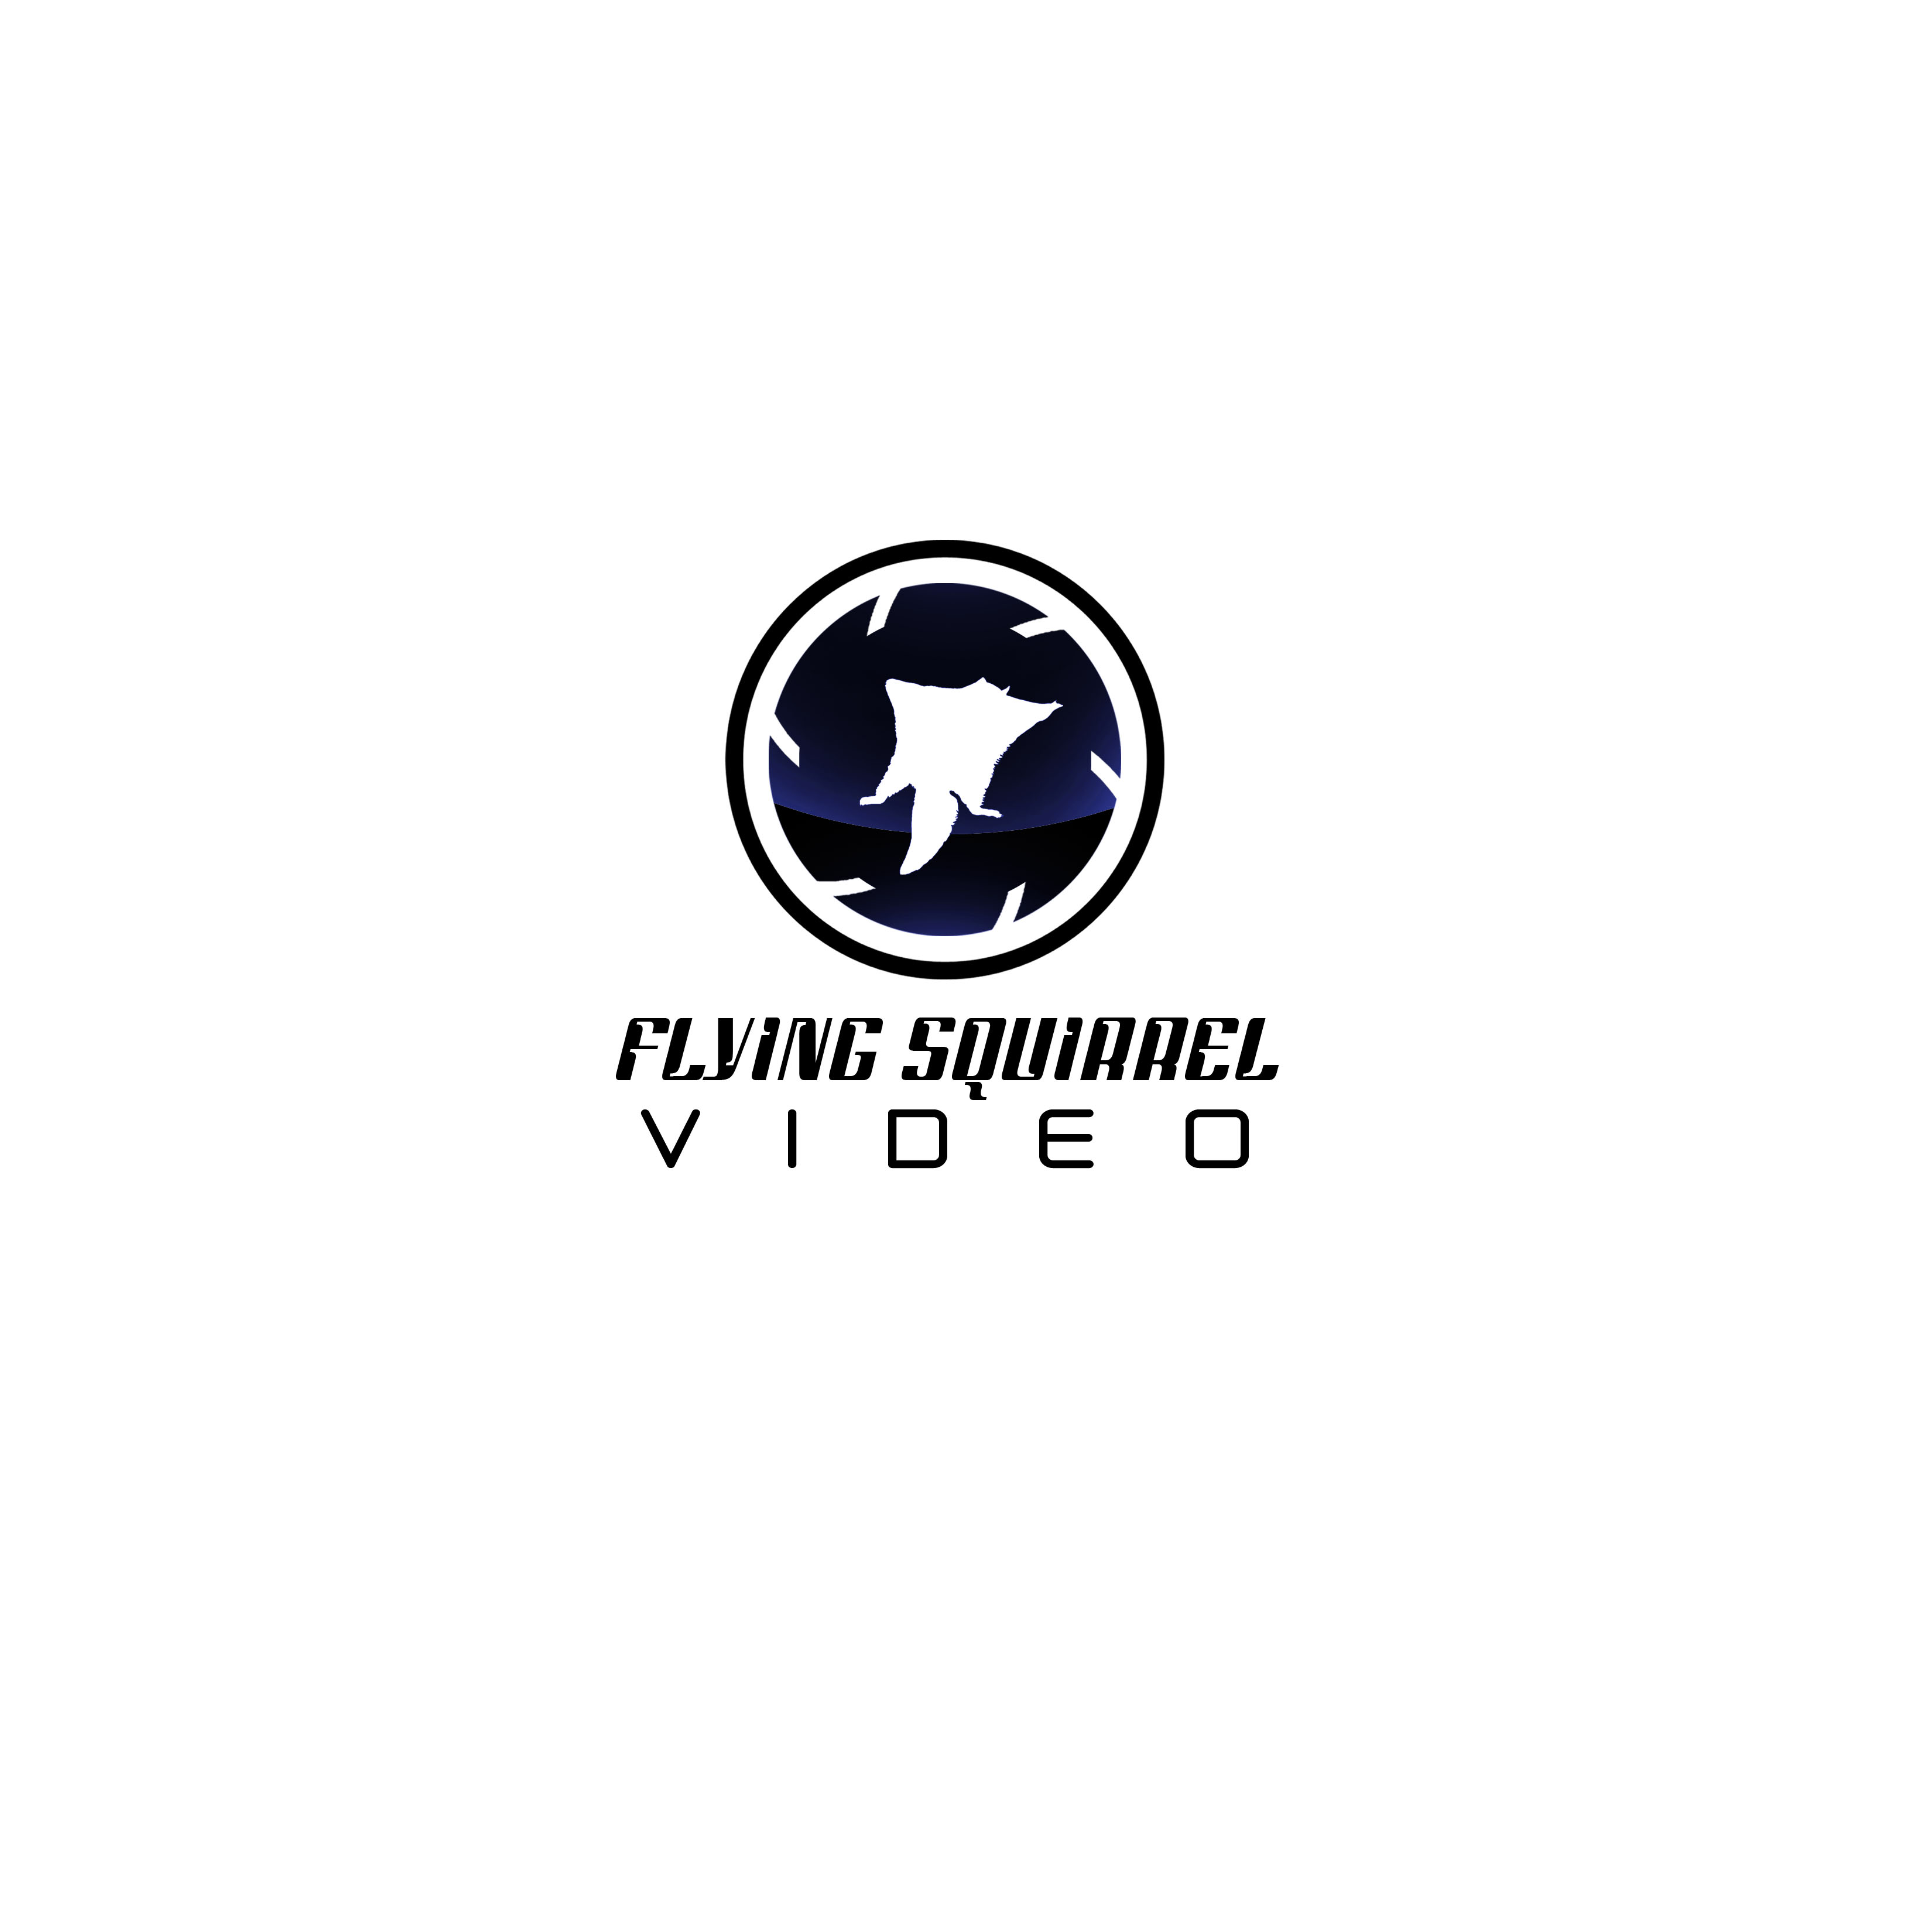 Logo Design by Allan Esclamado - Entry No. 70 in the Logo Design Contest Artistic Logo Design for Flying squirrel video.